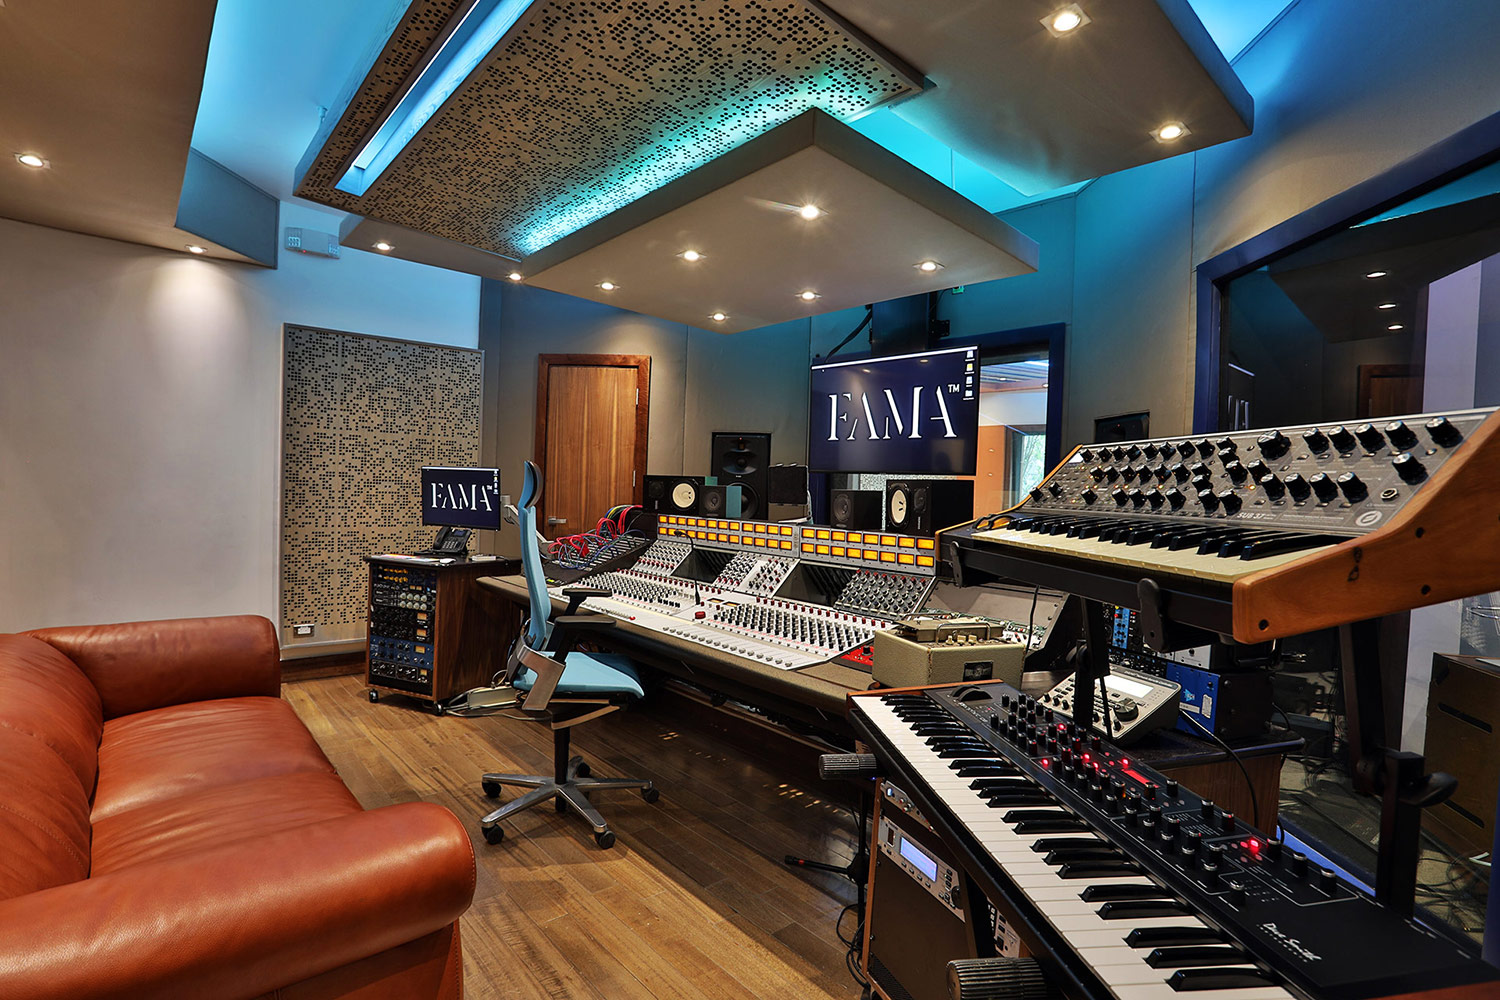 FAMA Studio owner Luis Betances retained WSDG Latin for an acoustic and aesthetic studio design to create a dream recording studio that meets his production needs in Santo Domingo, Dominican Republic. Control Room A.